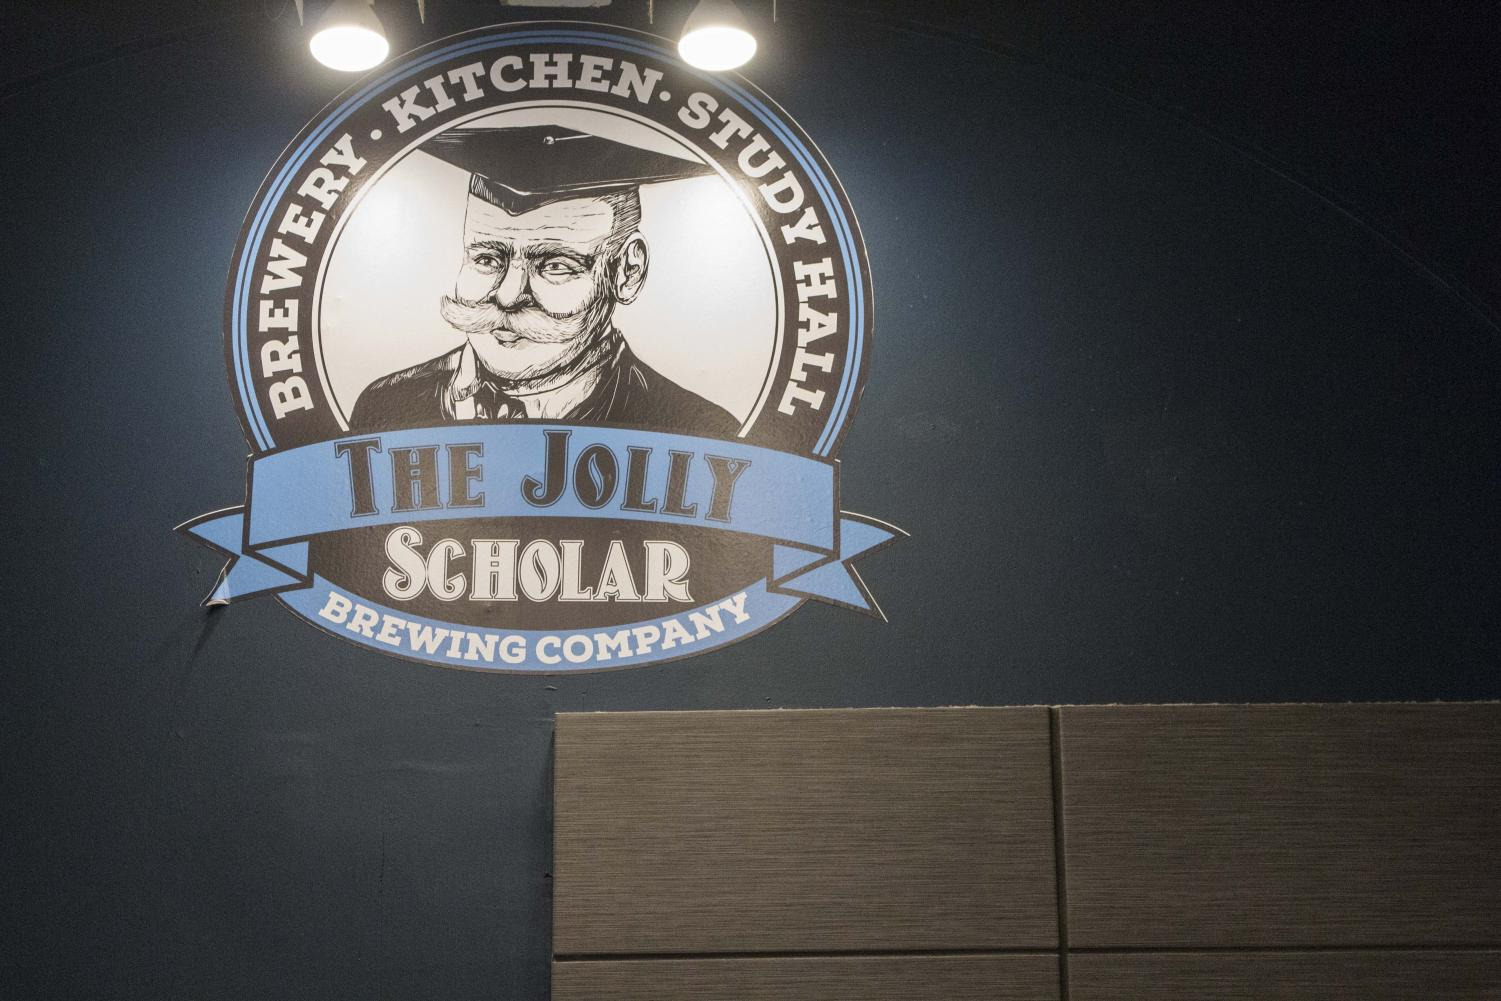 The Jolly Scholar's event